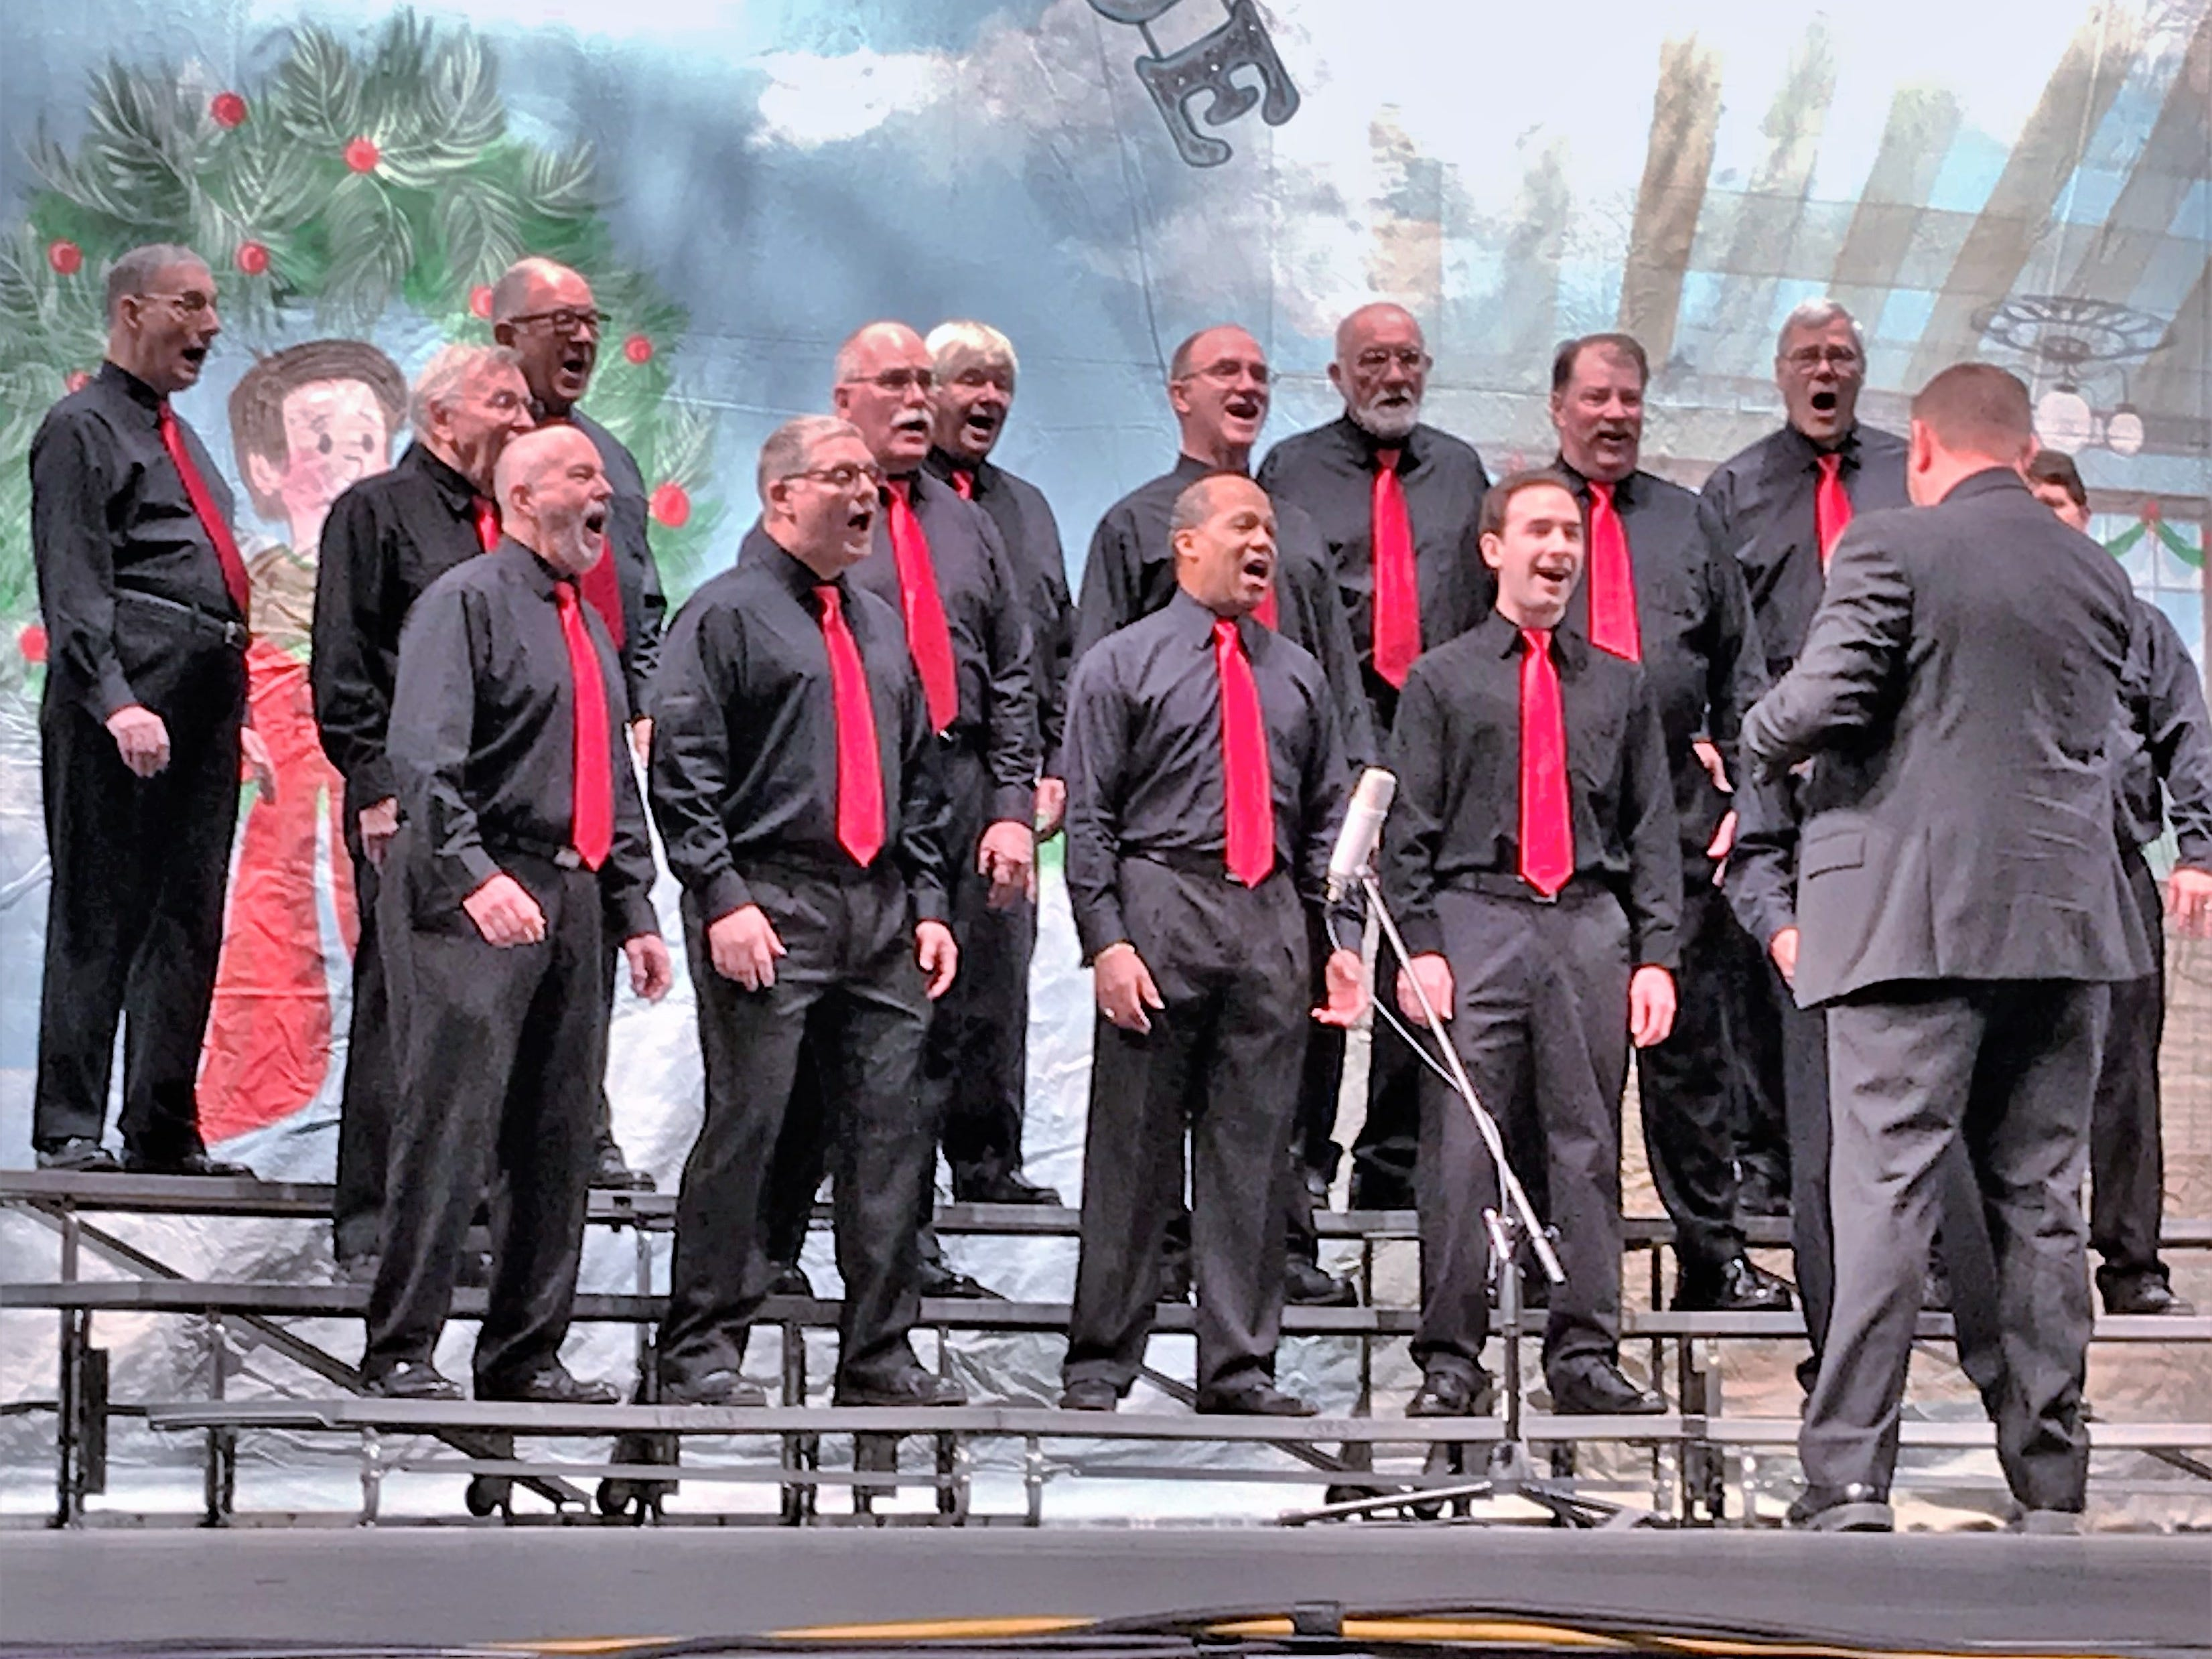 The Mark Twain Barbershop Chorus performs a number during Sunday's Arctic League broadcast.